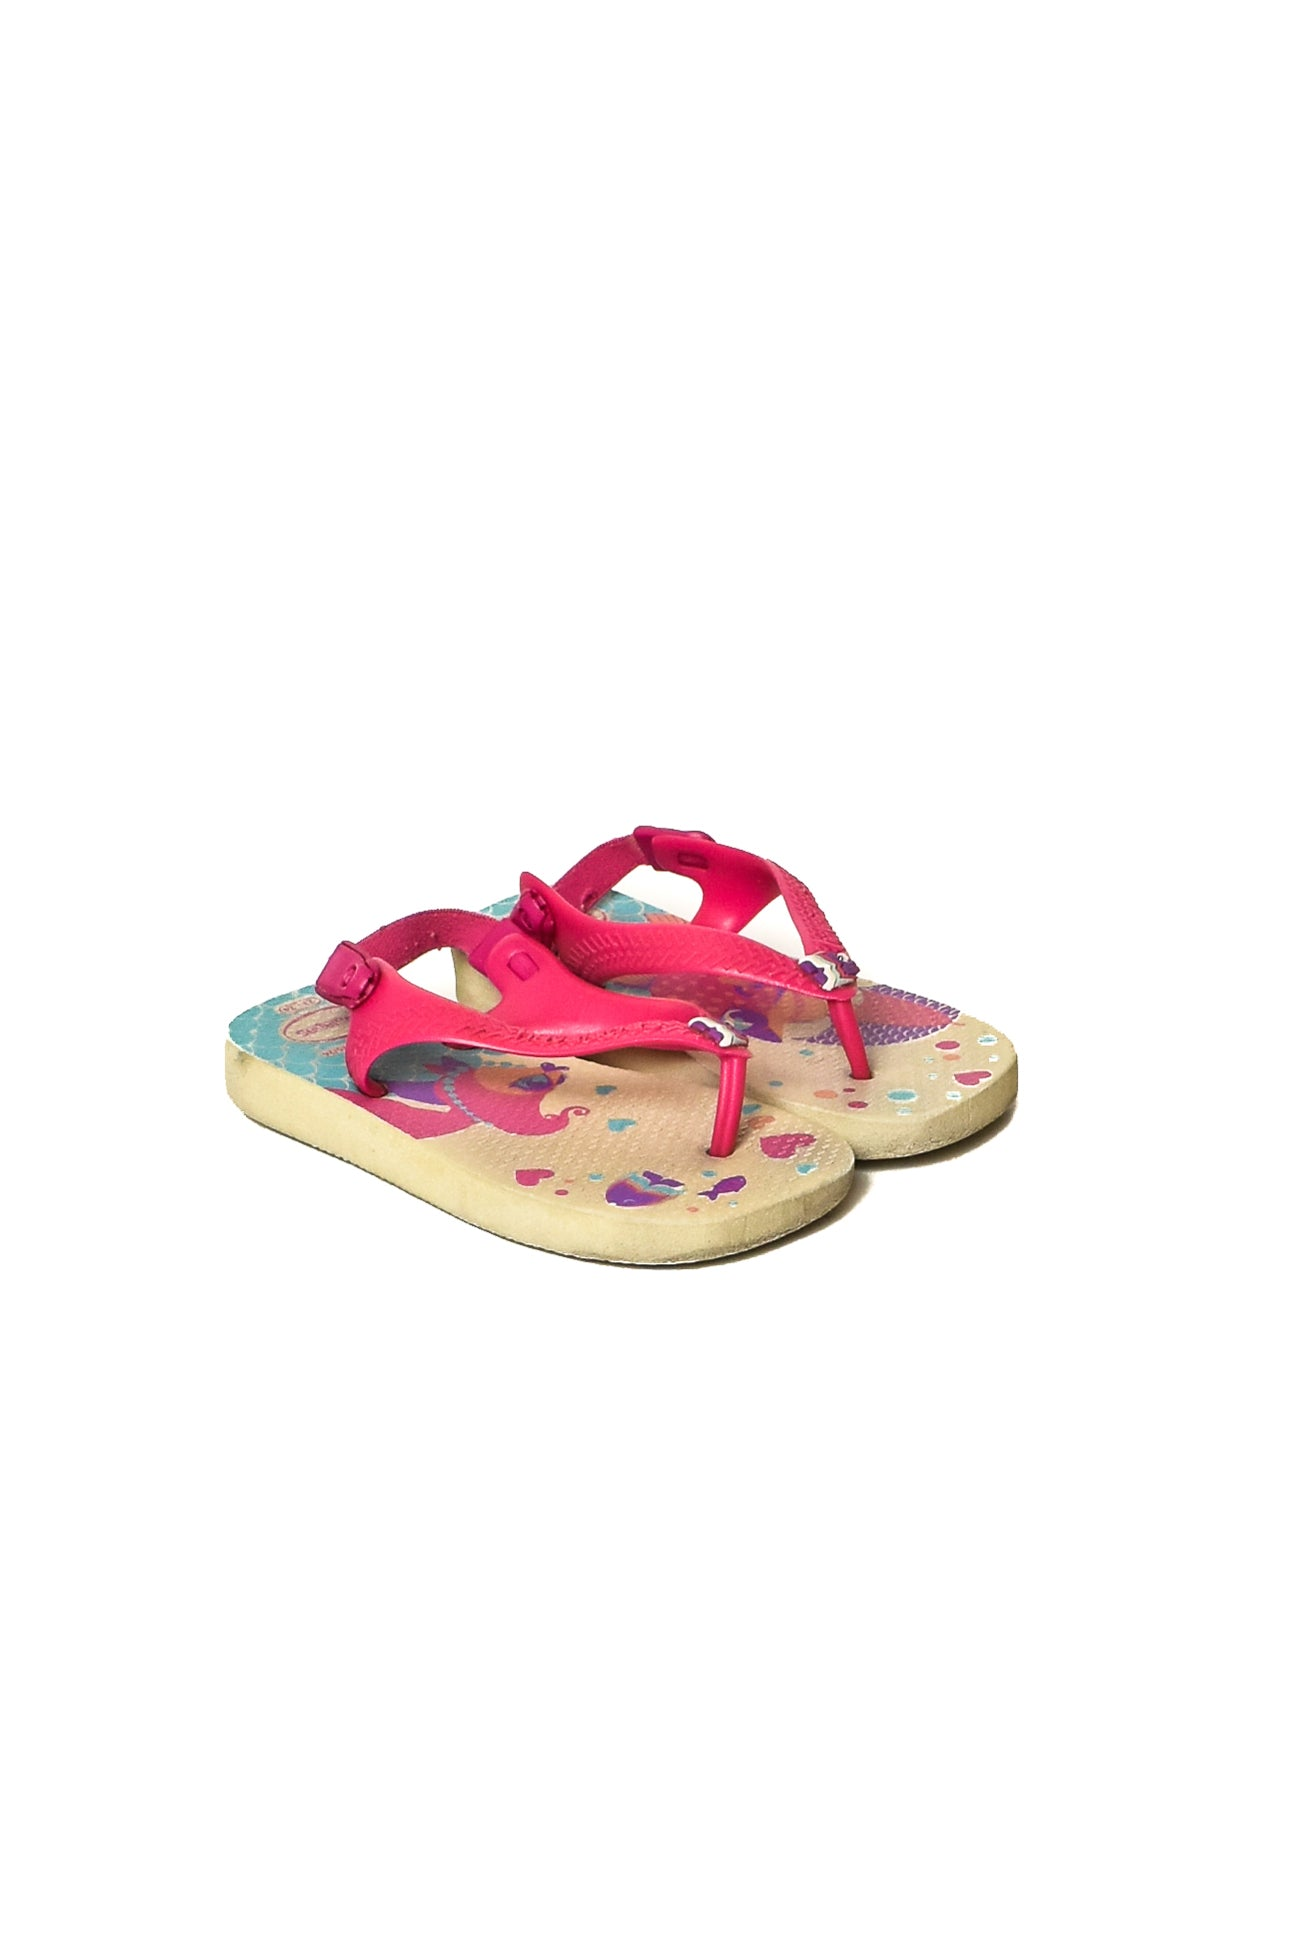 10008412 Havaianas Kids ~ Flip Flops 4T (EU 25/26) at Retykle